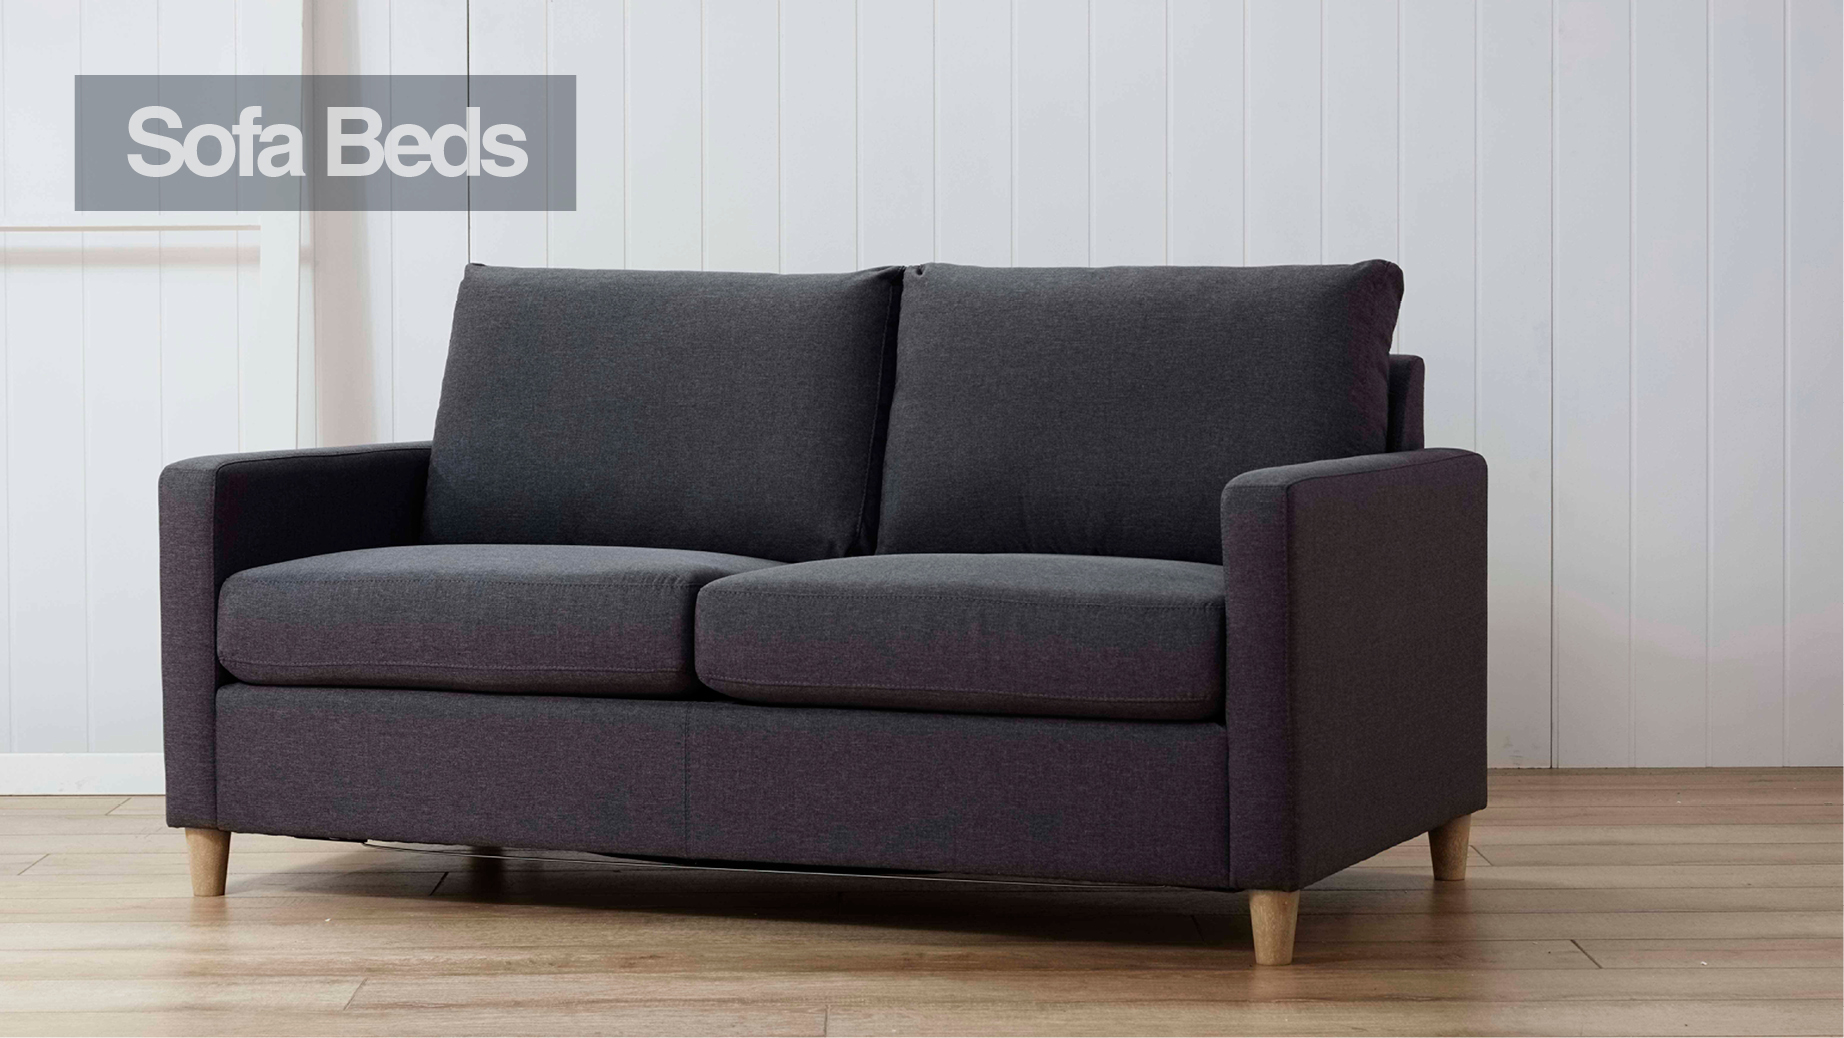 Cheapest sofa sydney home for Cheap home furniture sydney